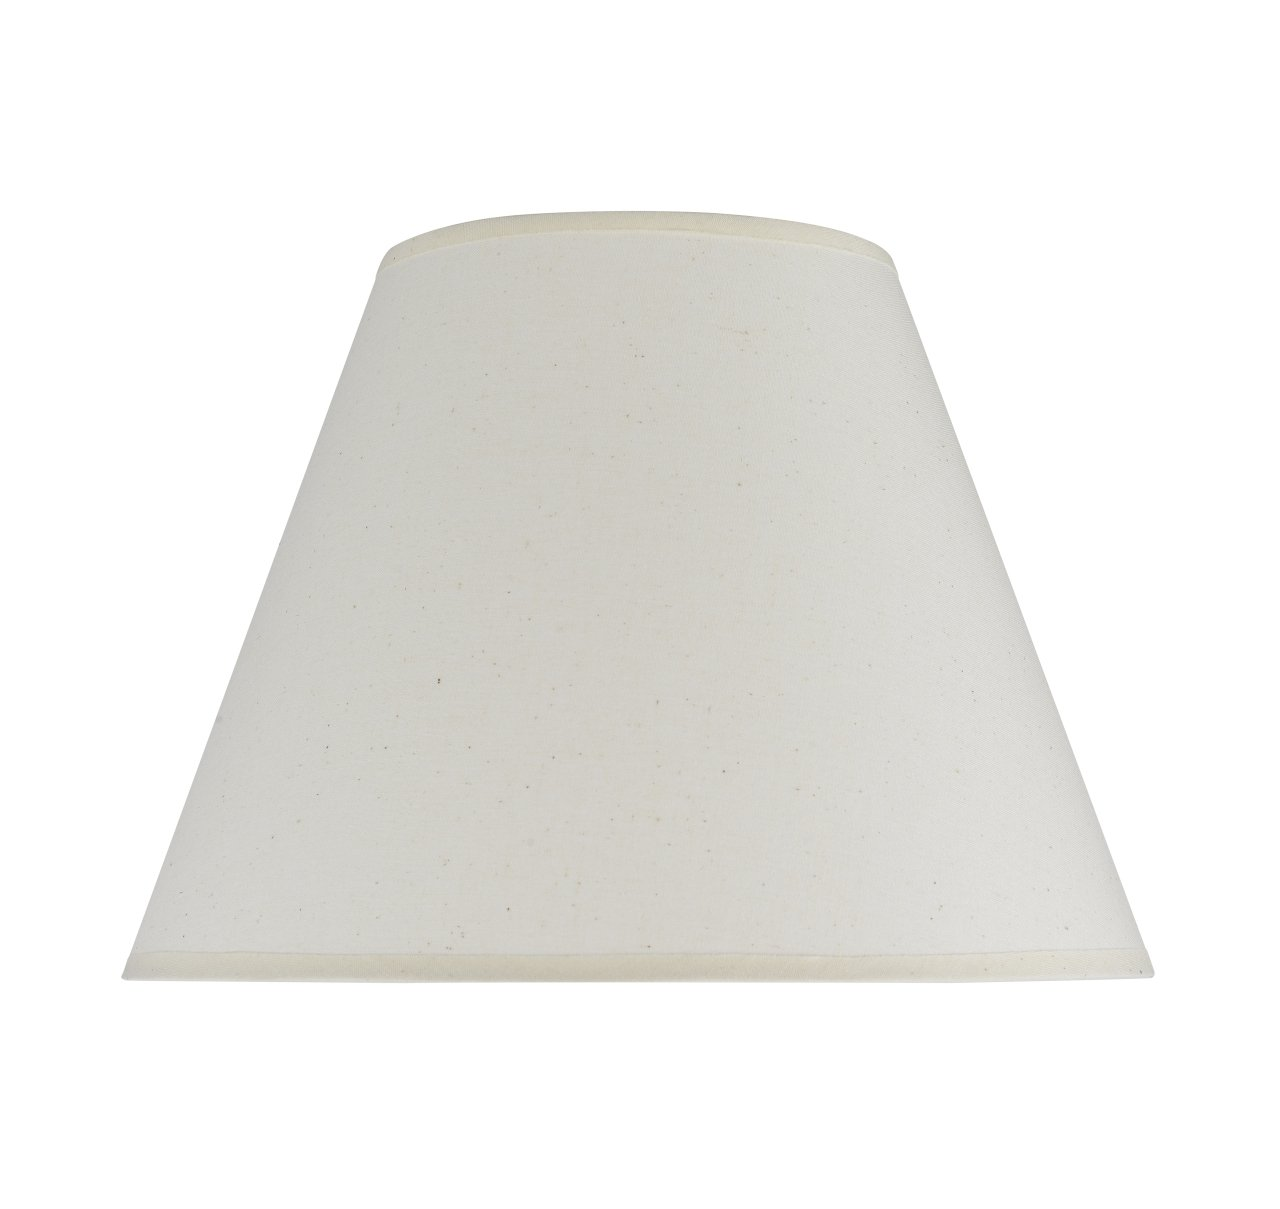 """Aspen Creative 32030 Transitional Hardback Empire Shape Spider Construction Lamp Shade in Ivory, 12"""" wide (6"""" x 12"""" x 9"""")"""